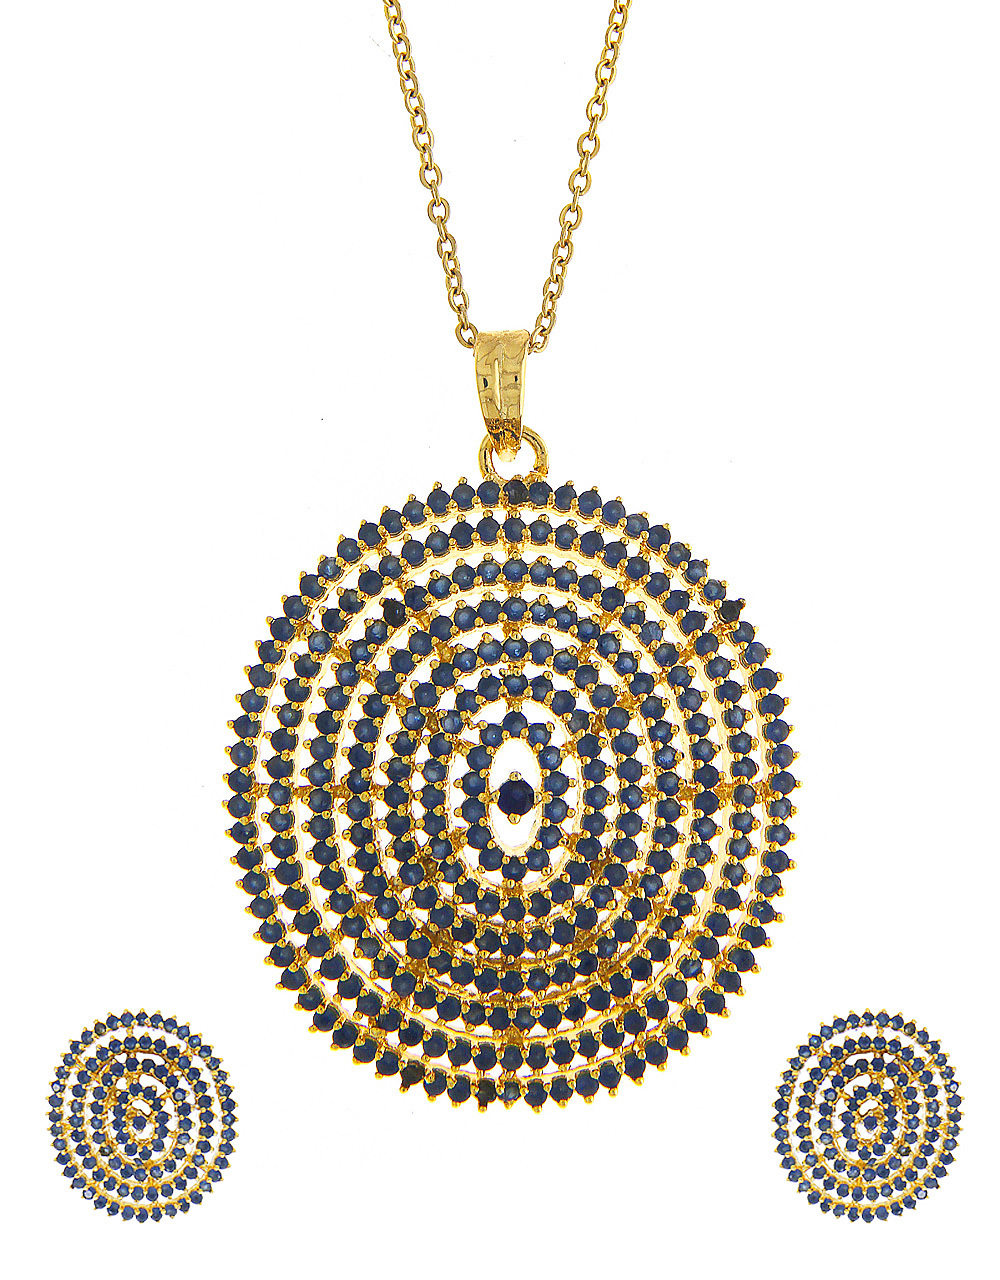 Blue Colour Gold Finish Diamond Pendant Accessories